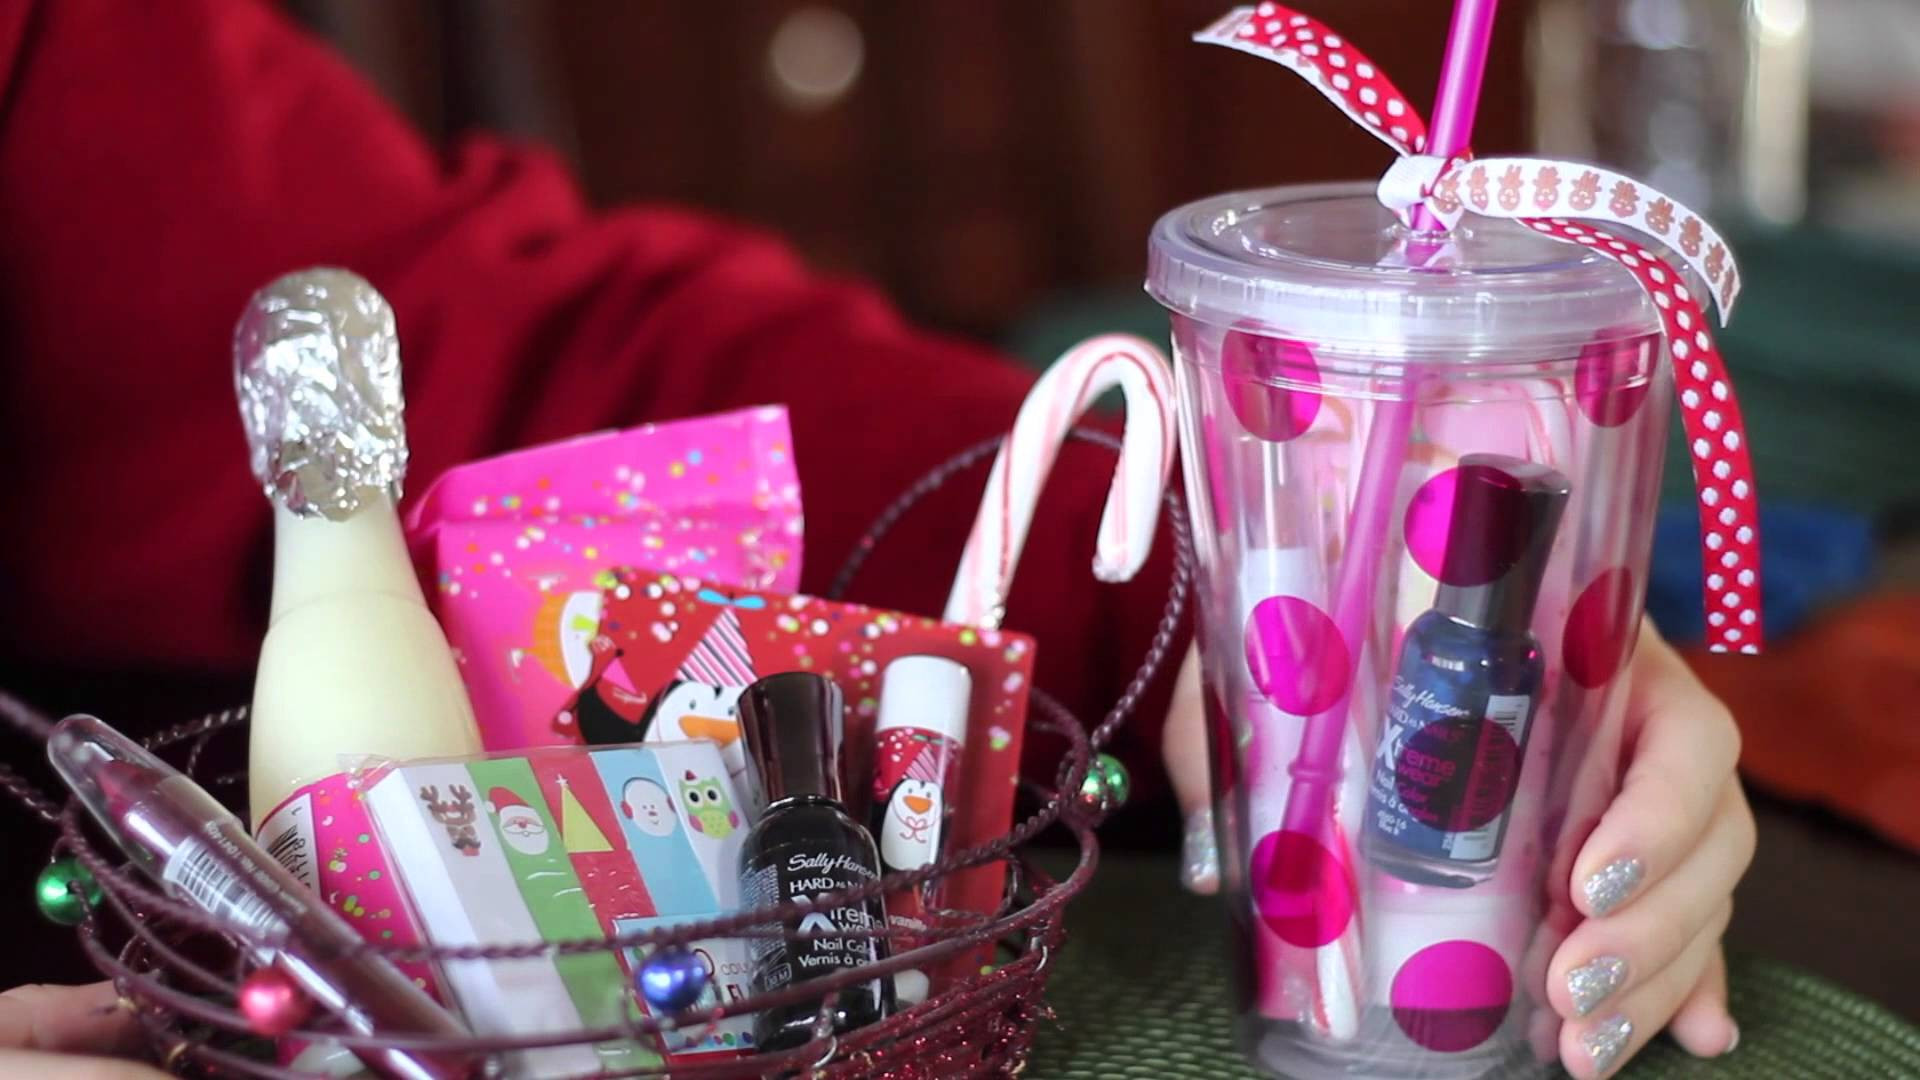 Best ideas about Cheap Gift Ideas For Girlfriend . Save or Pin Quick And Cheap Diy Christmas Gifts Ideas Now.